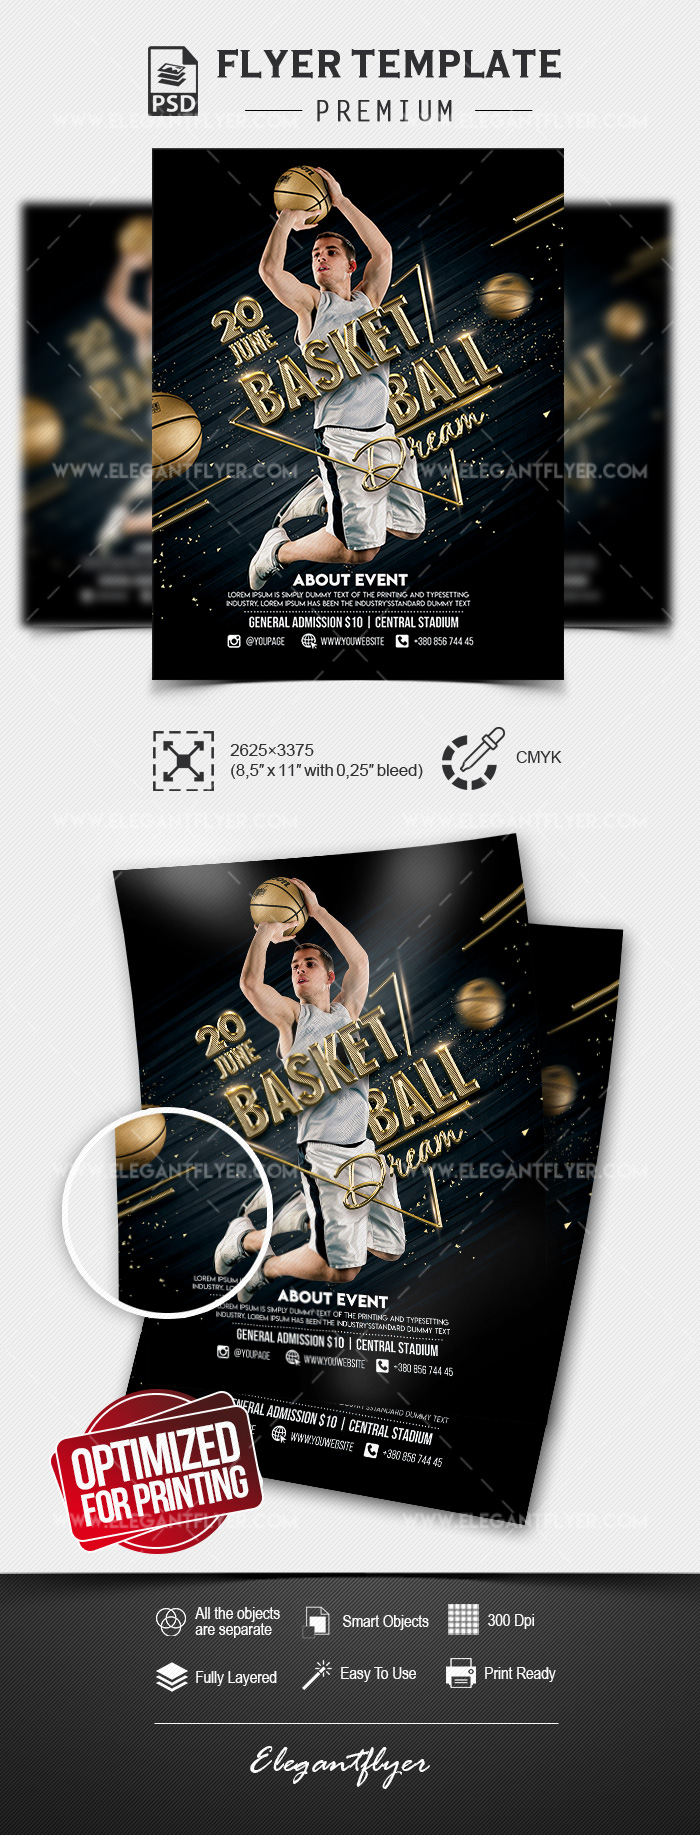 Basketball Dream – Premium Flyer Template in PSD